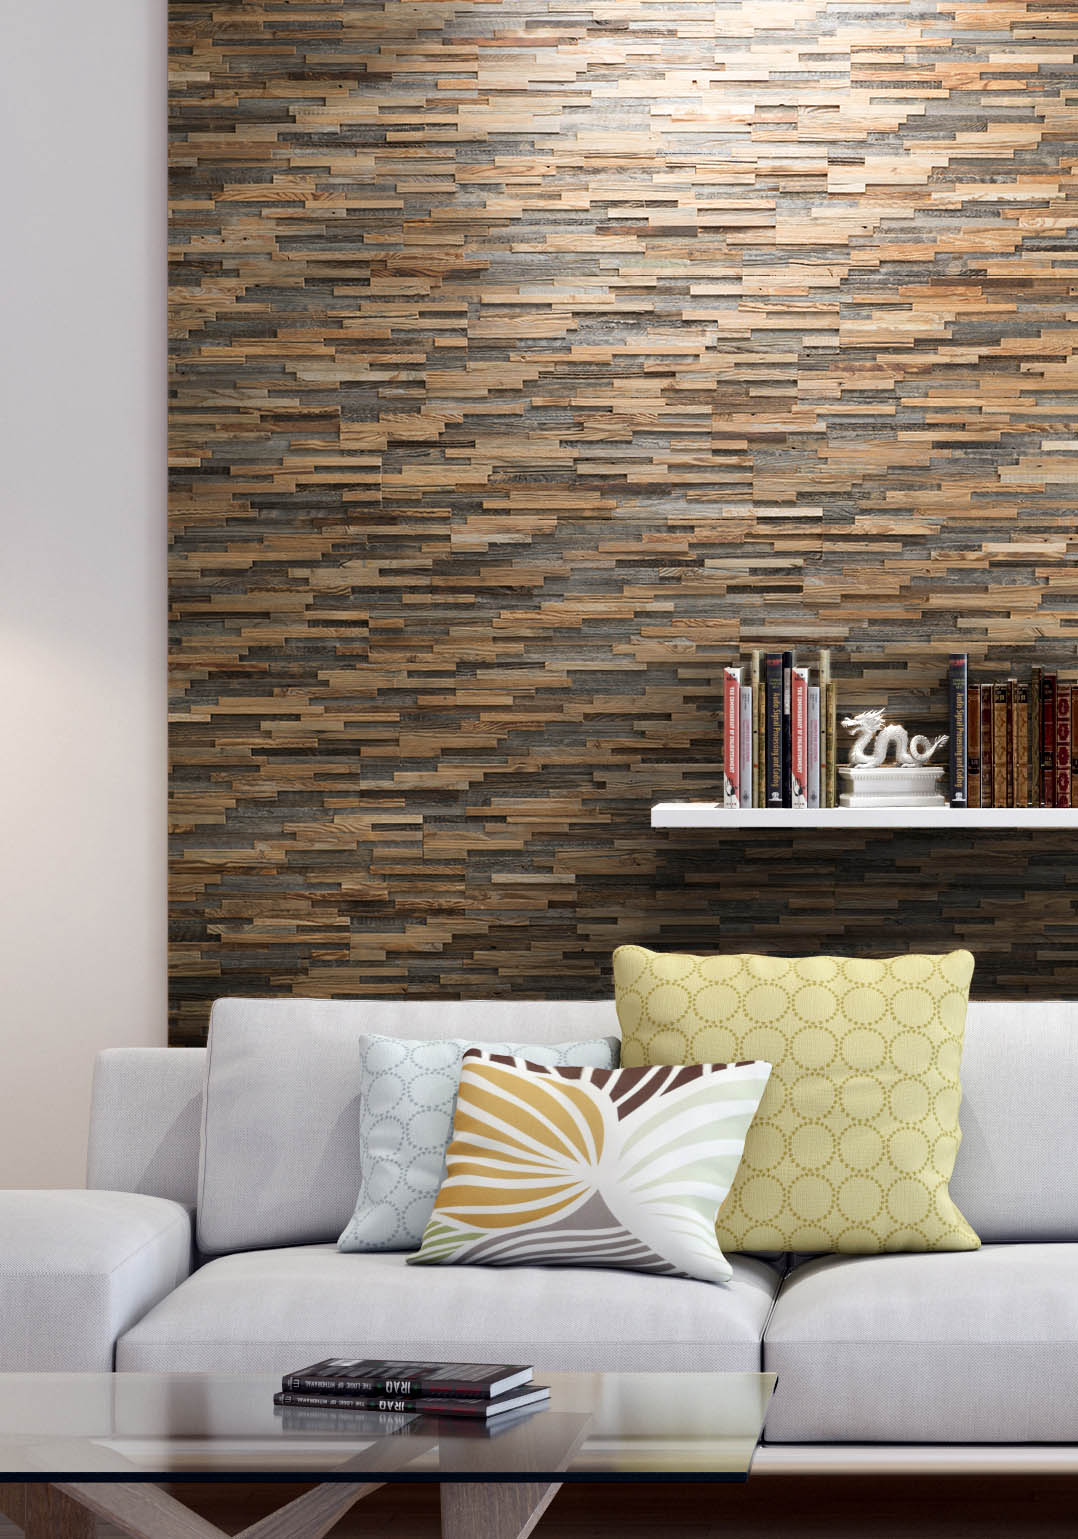 Reclaimed wood wall panels